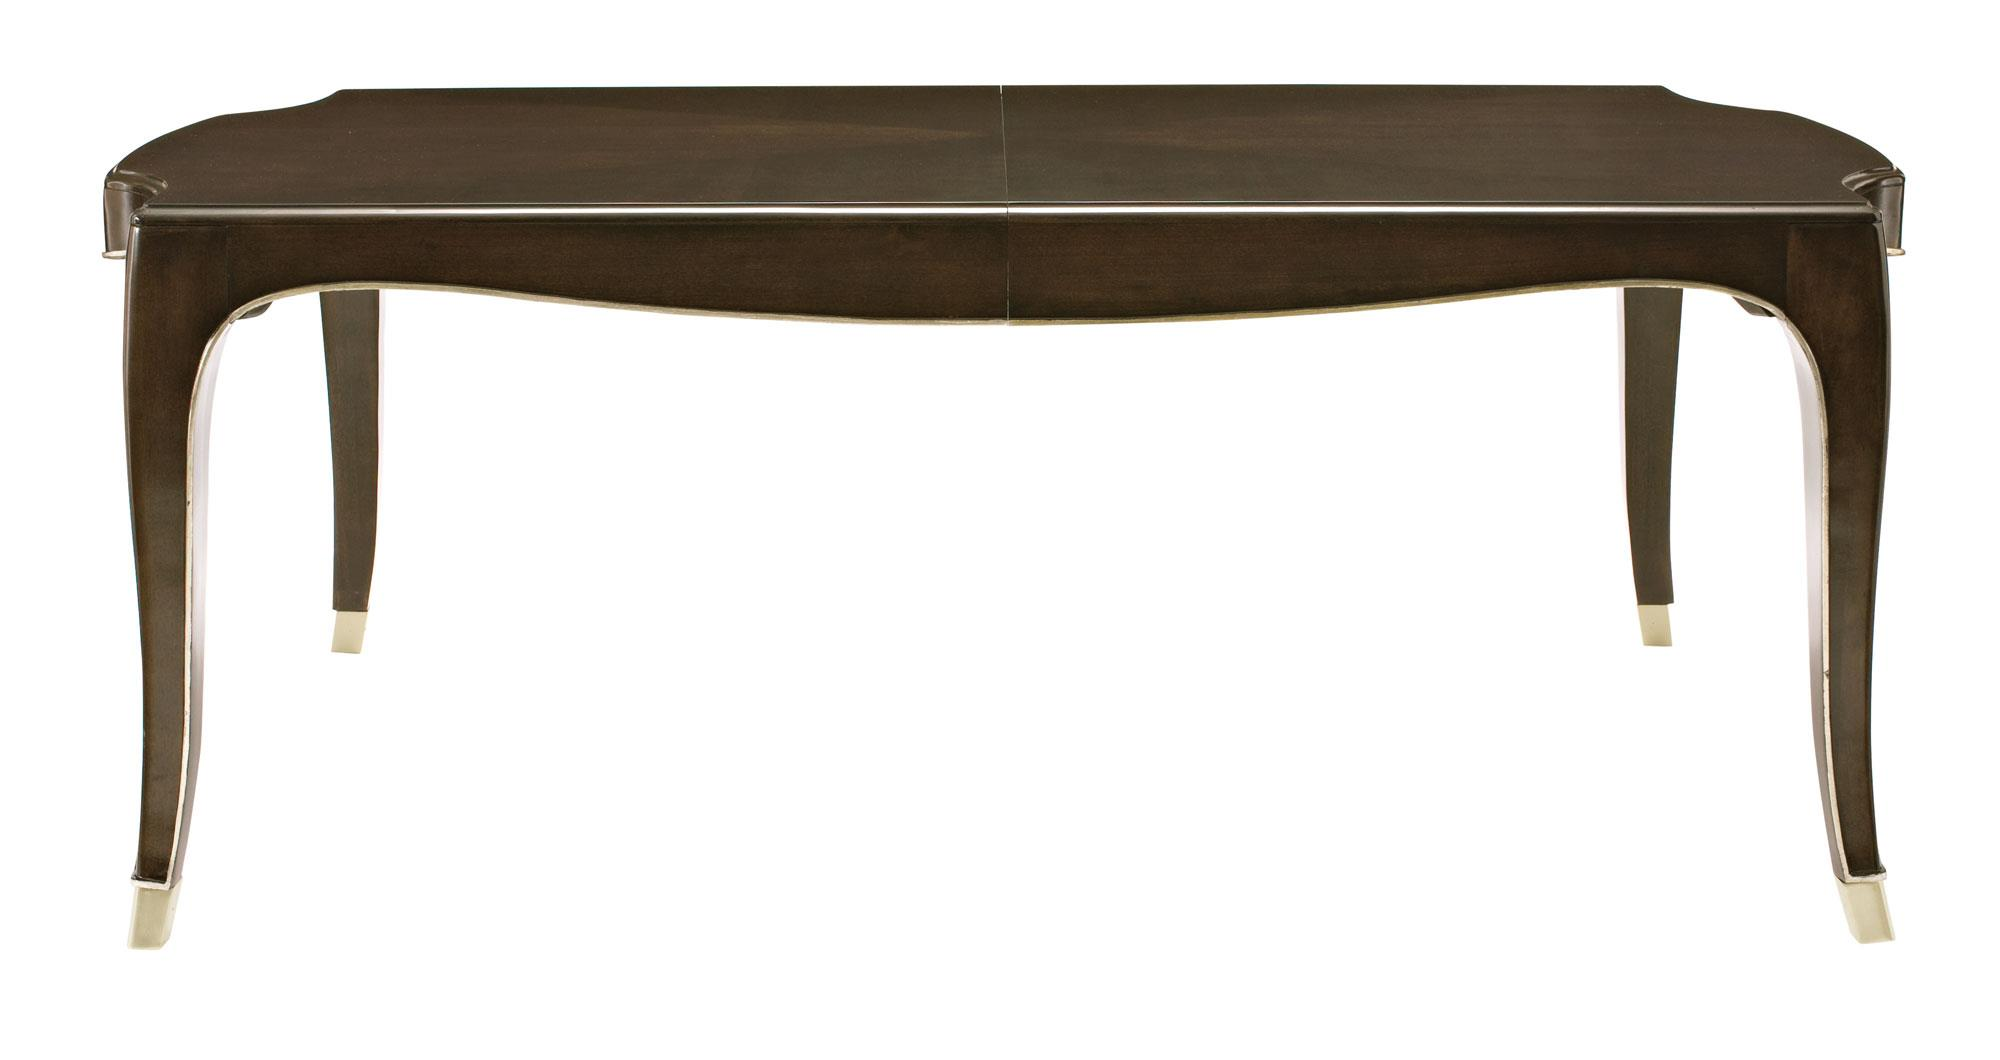 Bernhardt Miramont Dining Table - Item Number: 360-222